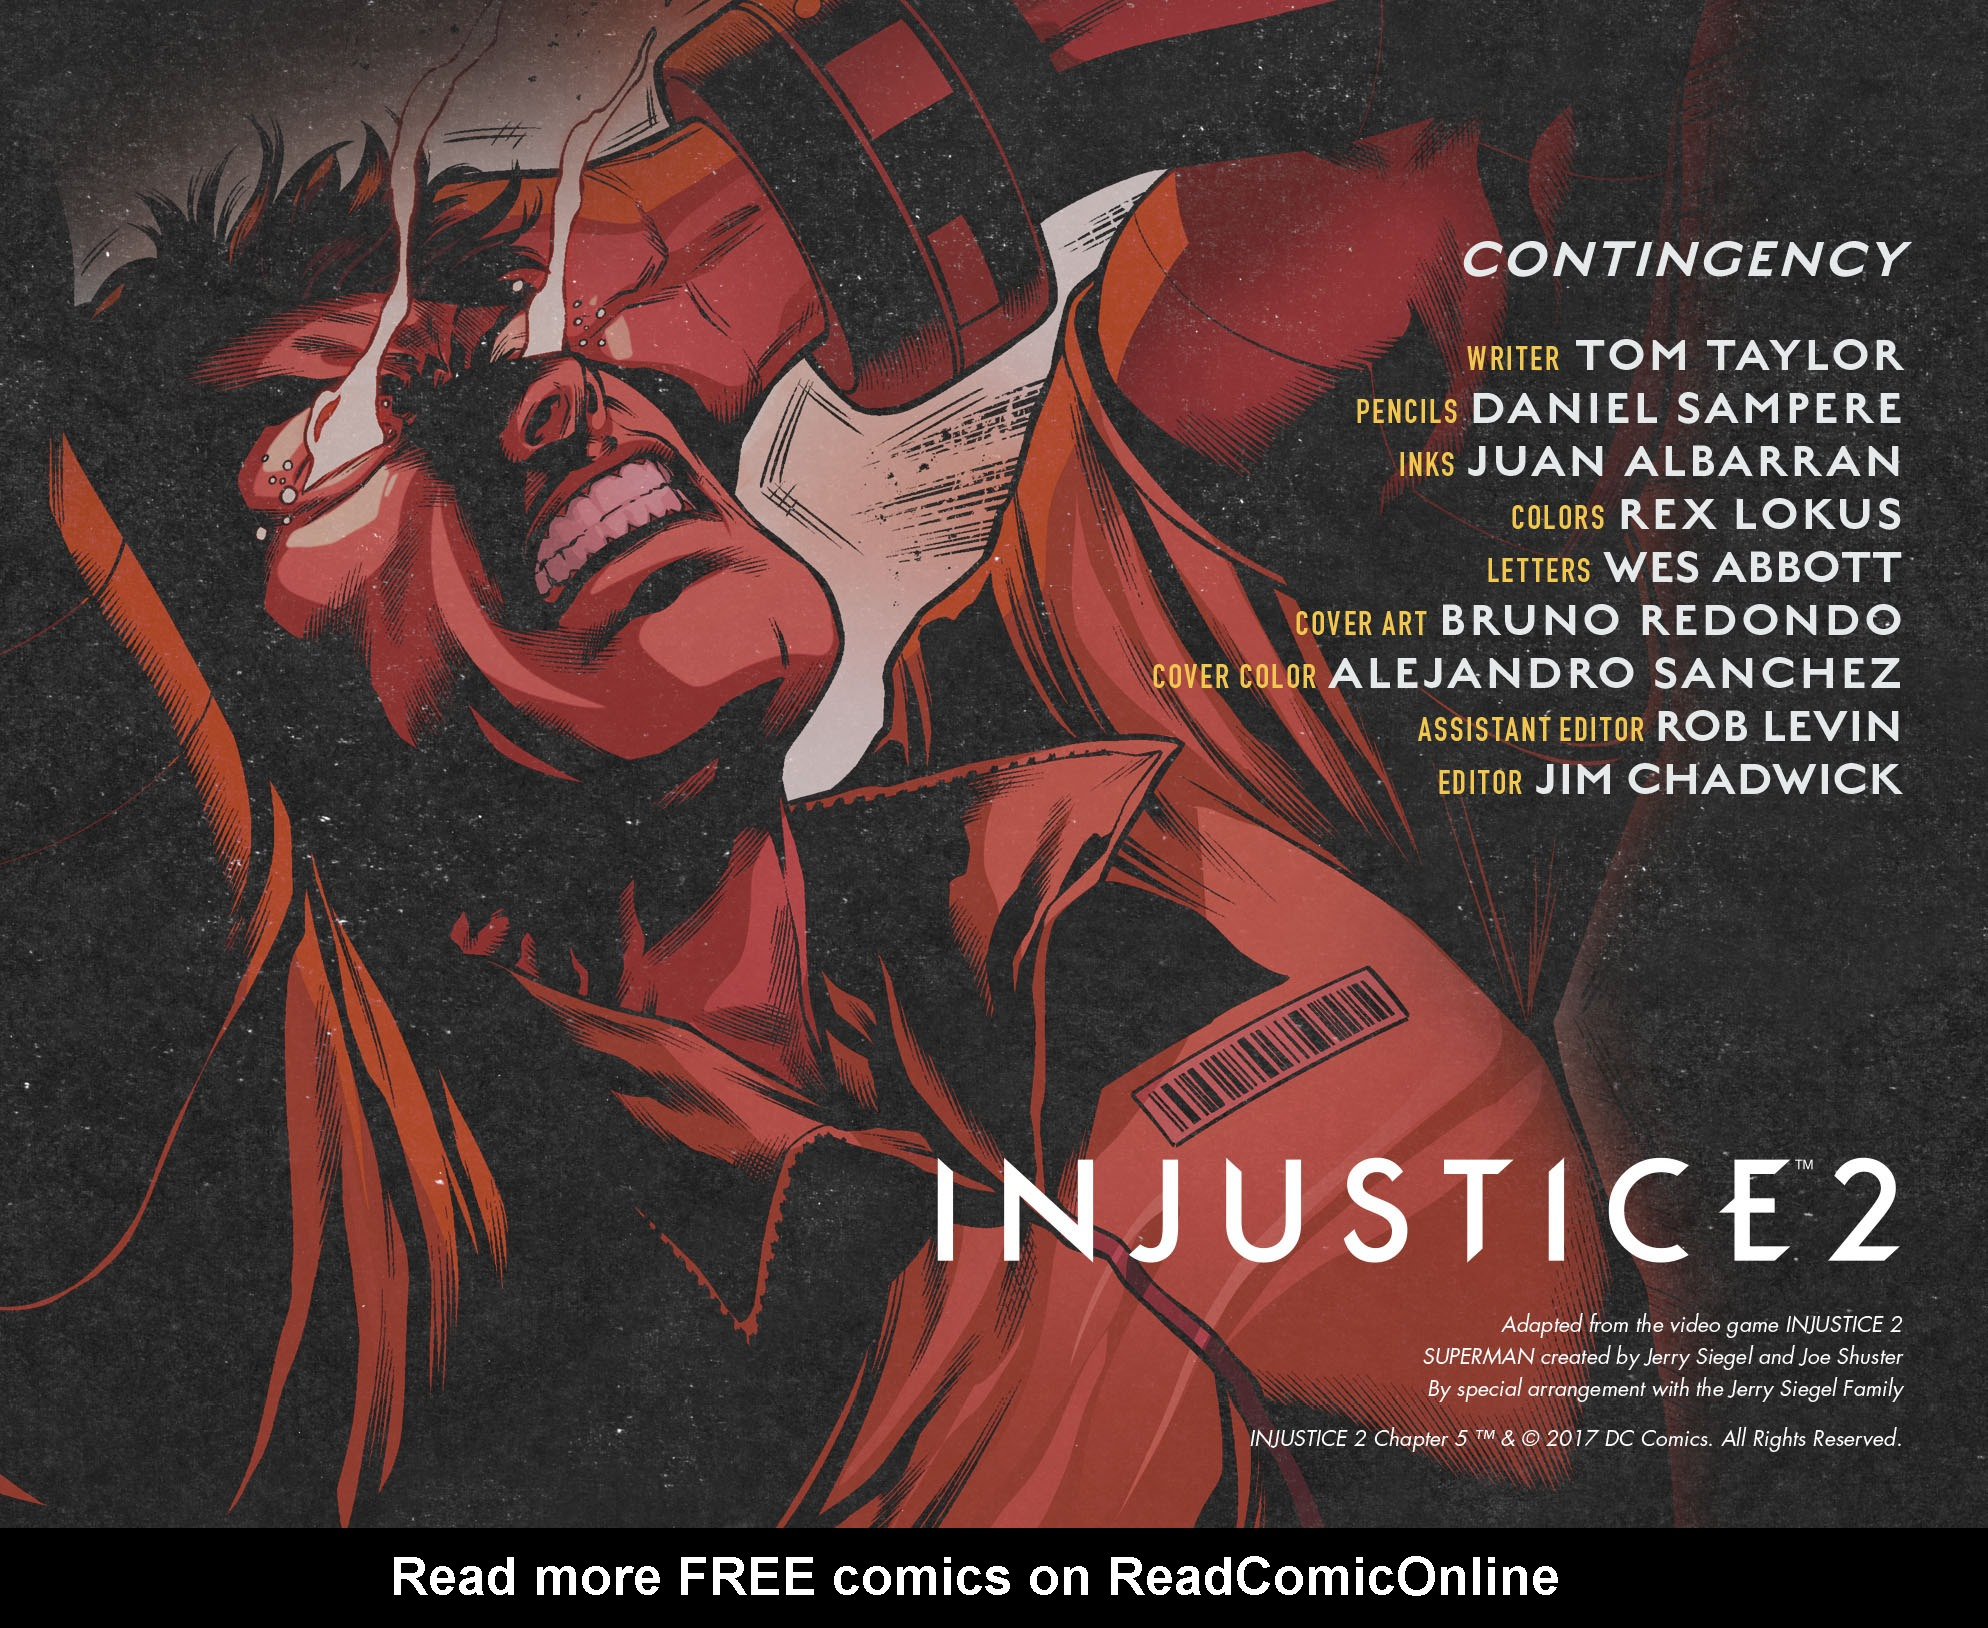 Read online Injustice 2 comic -  Issue #5 - 3